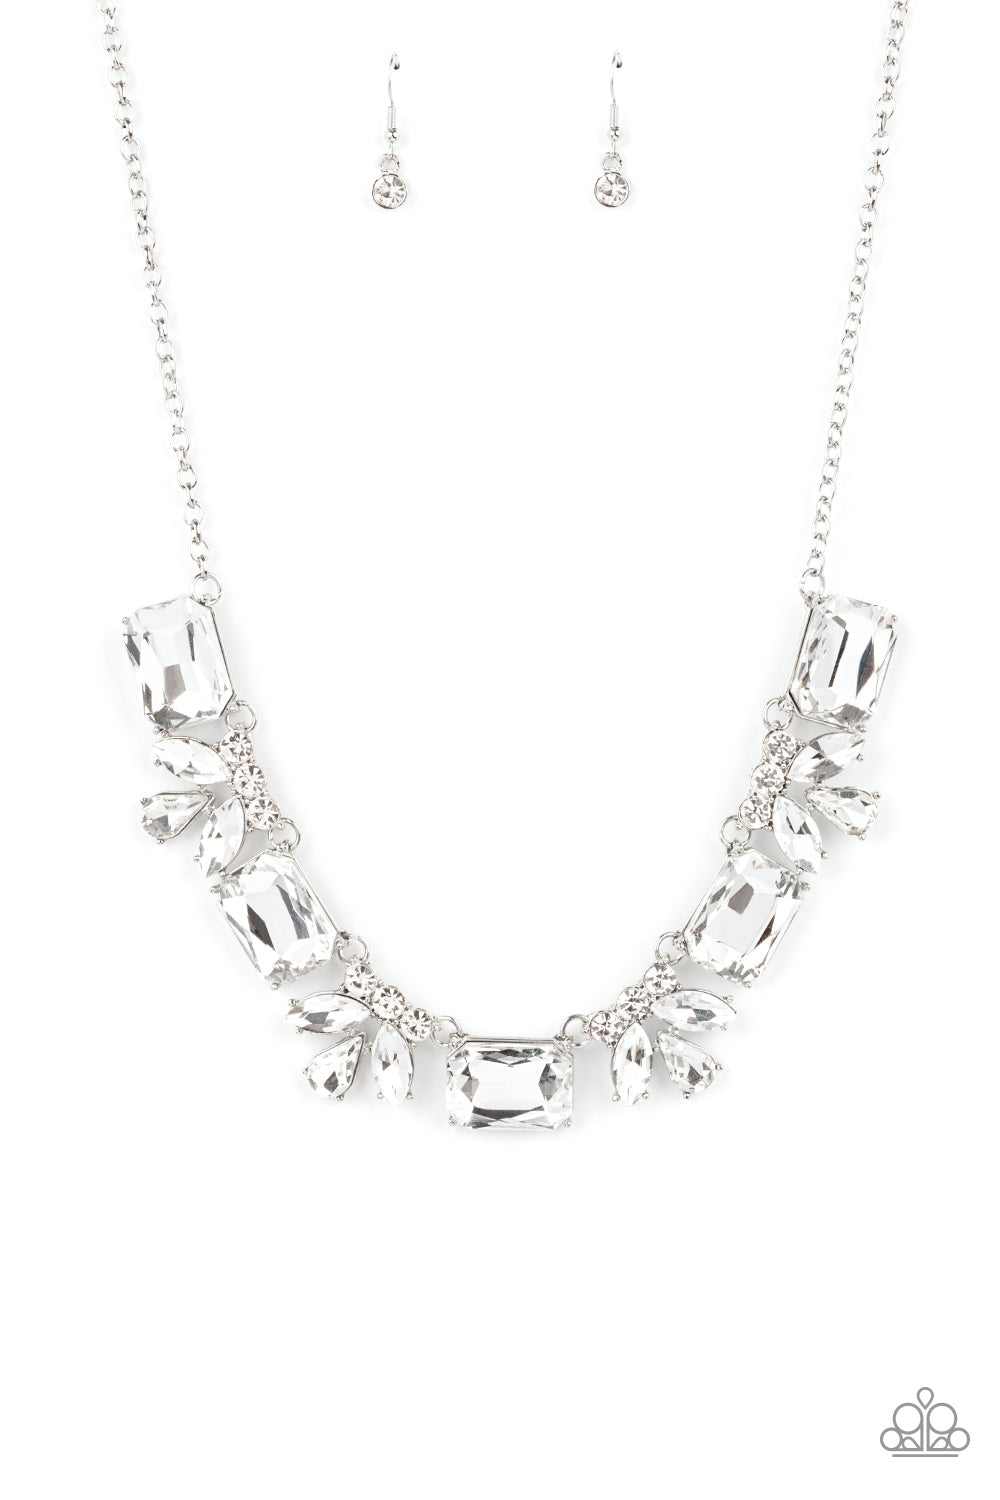 five-dollar-jewelry-long-live-sparkle-white-necklace-paparazzi-accessories